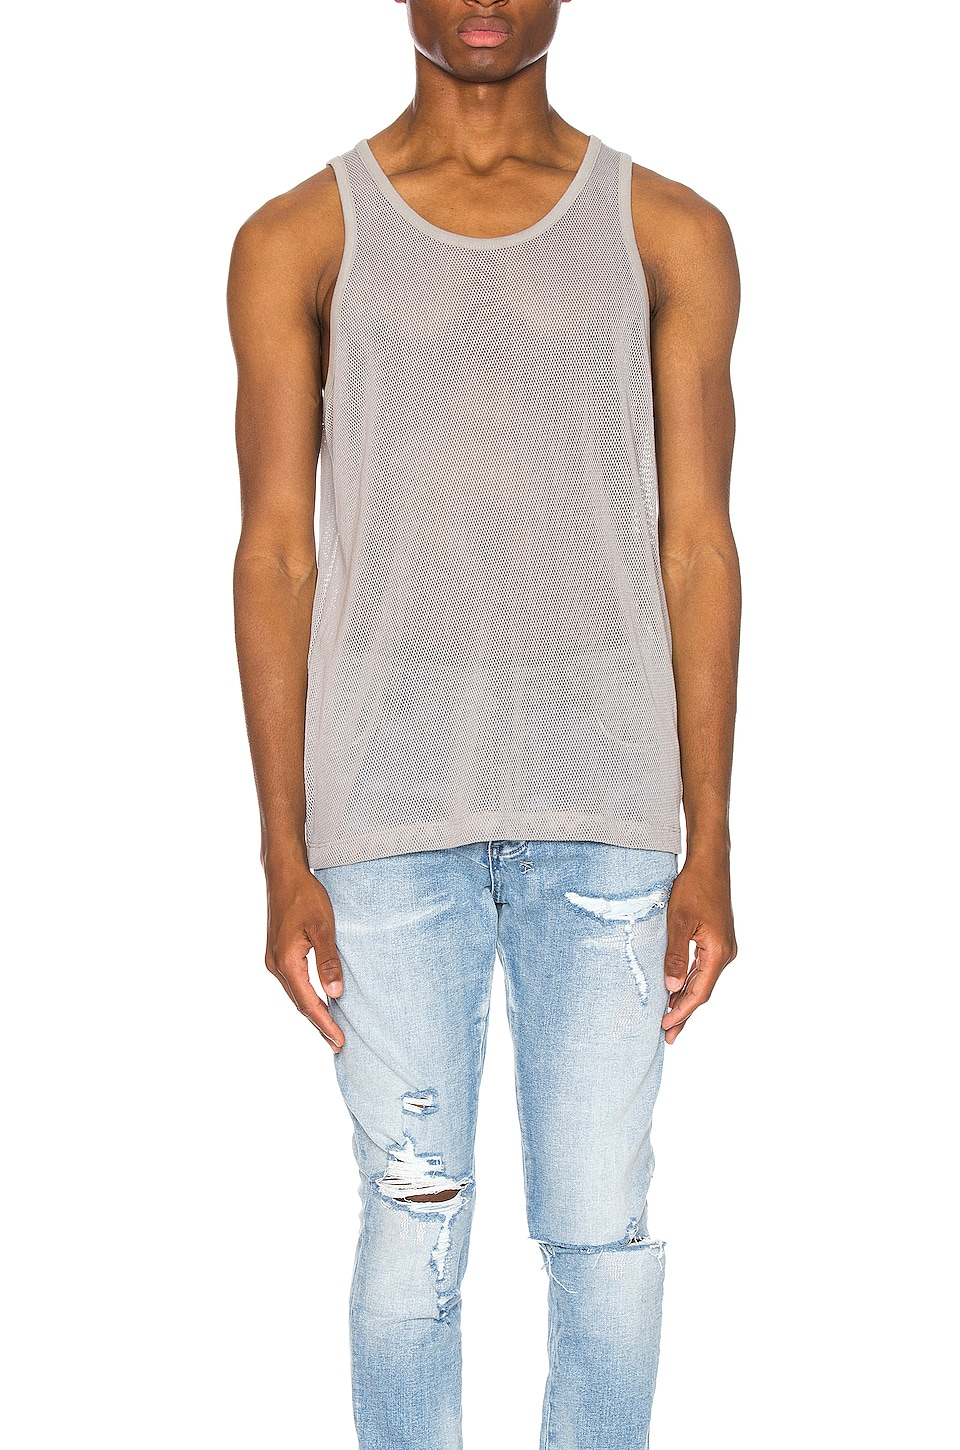 John Elliott Accessories Cotton Mesh Tank